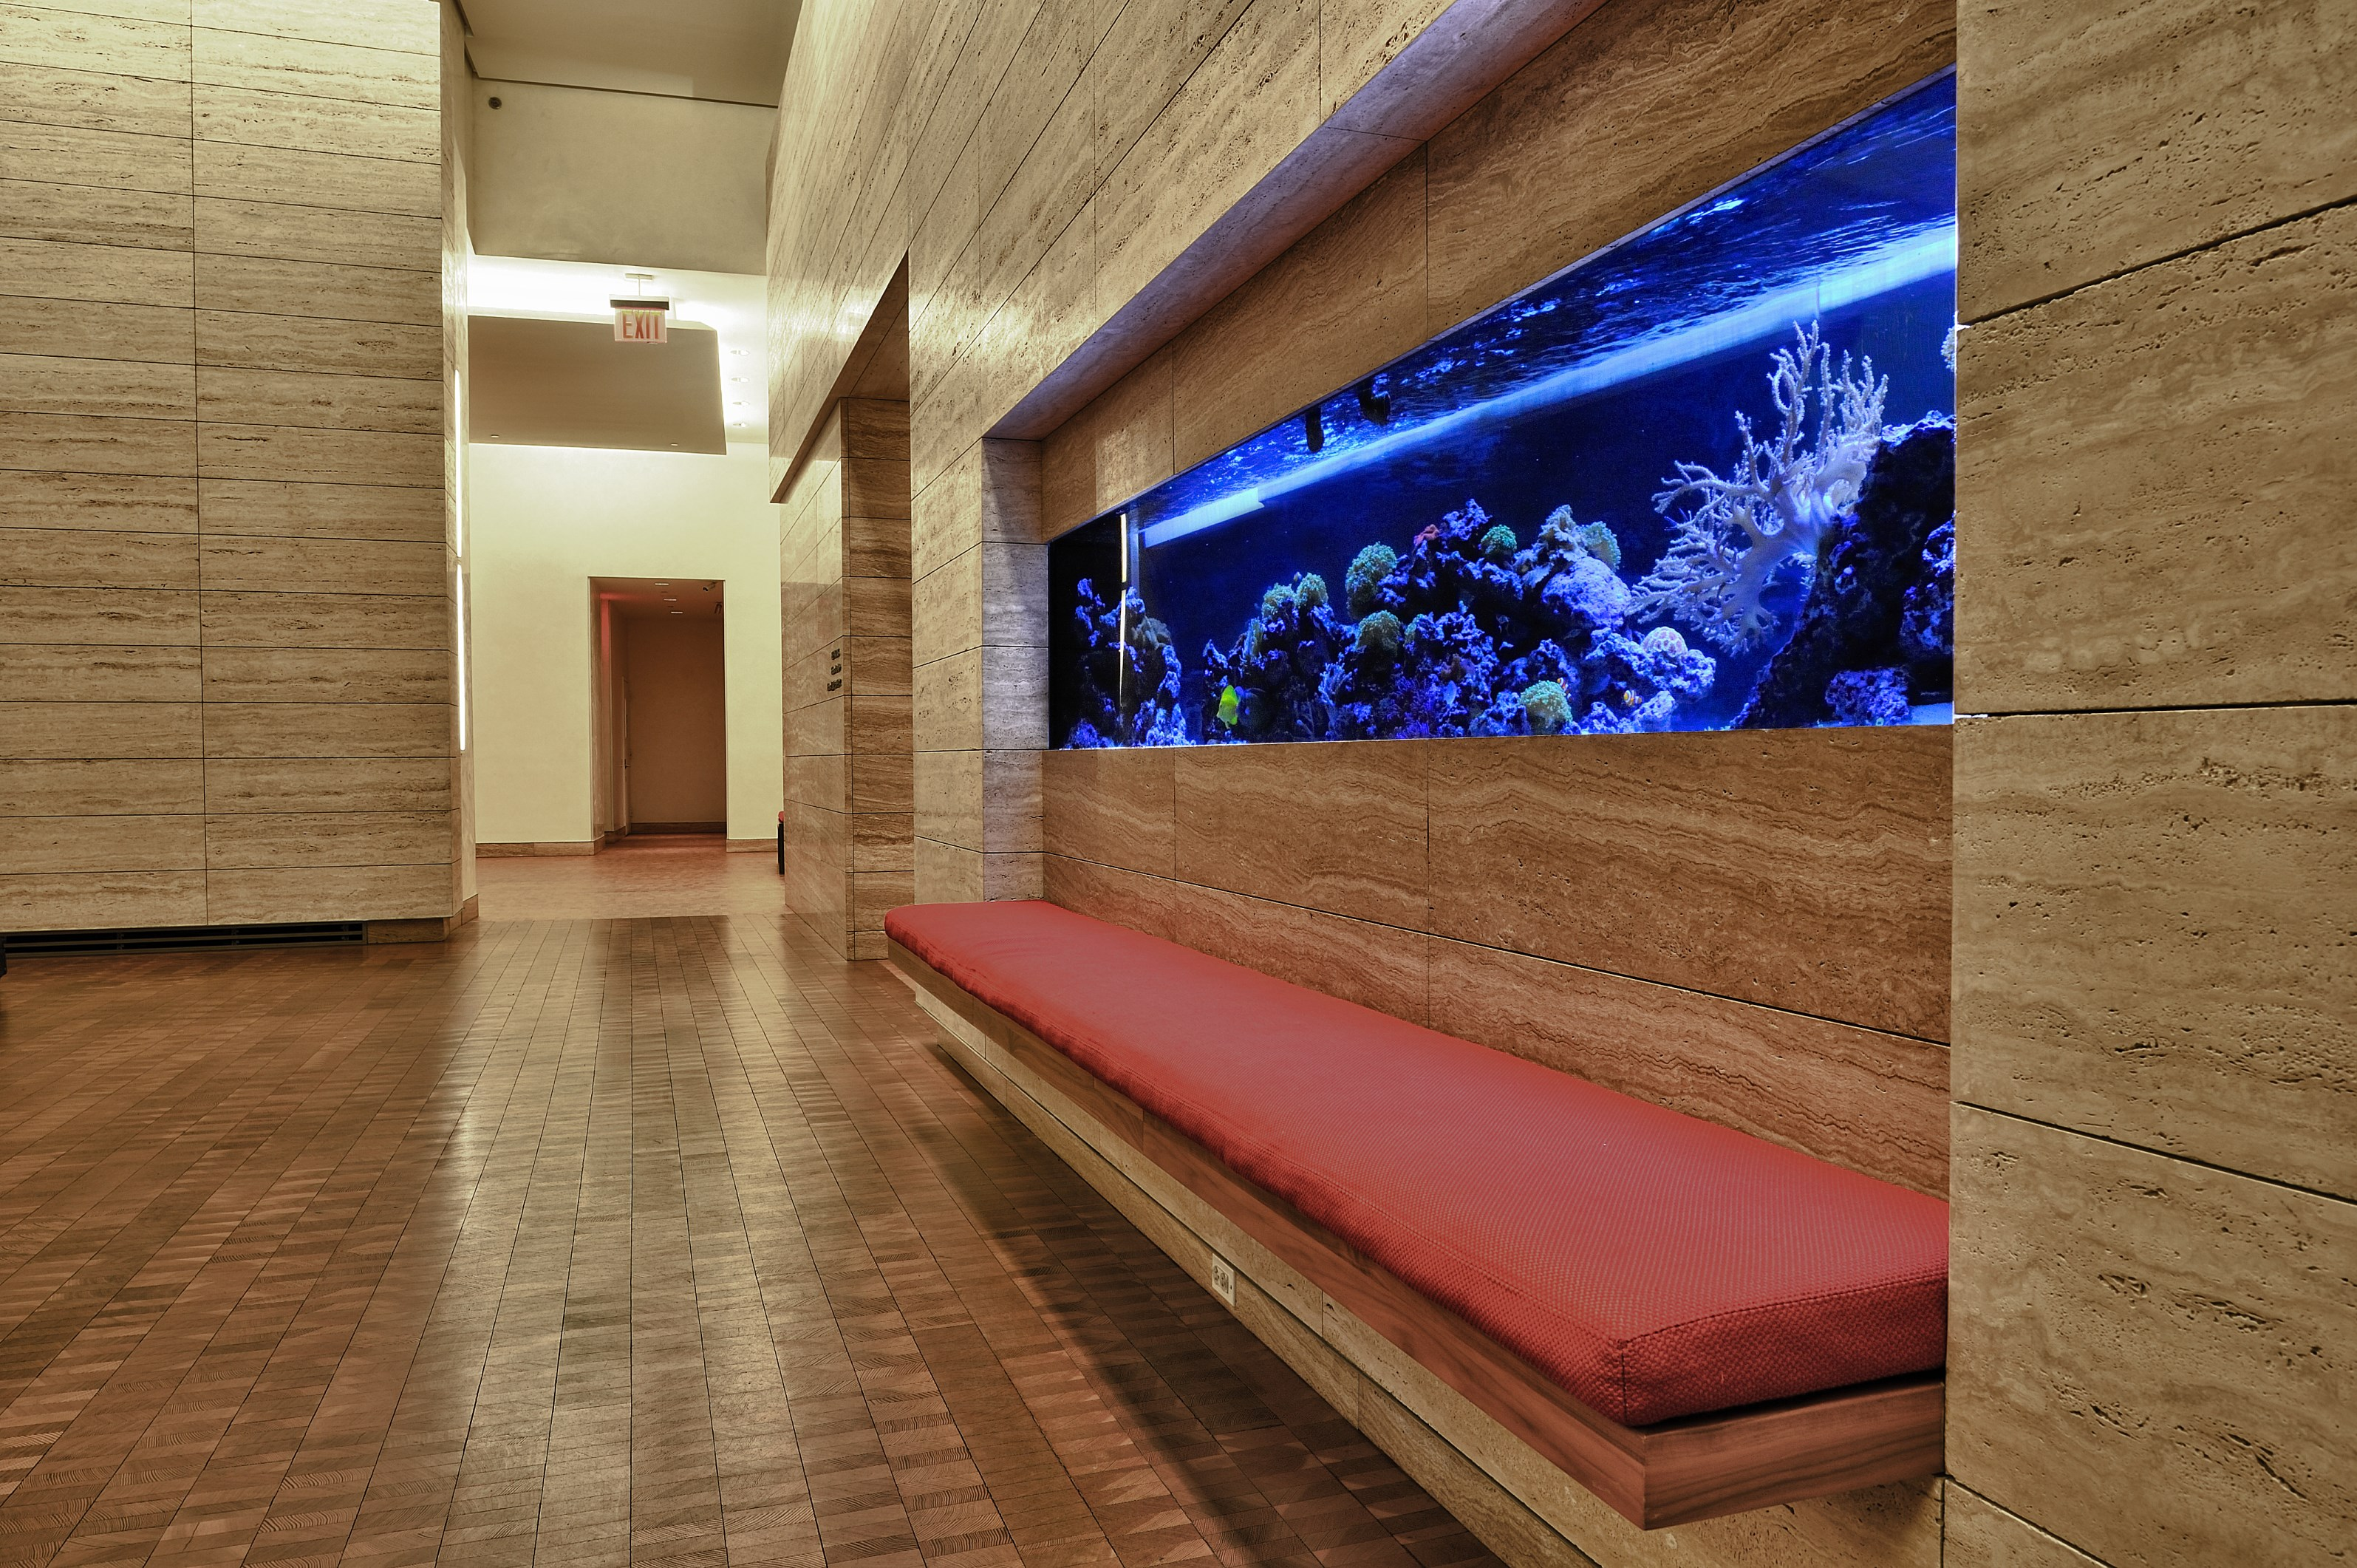 Fish tank cleaning service - Aquarium Service